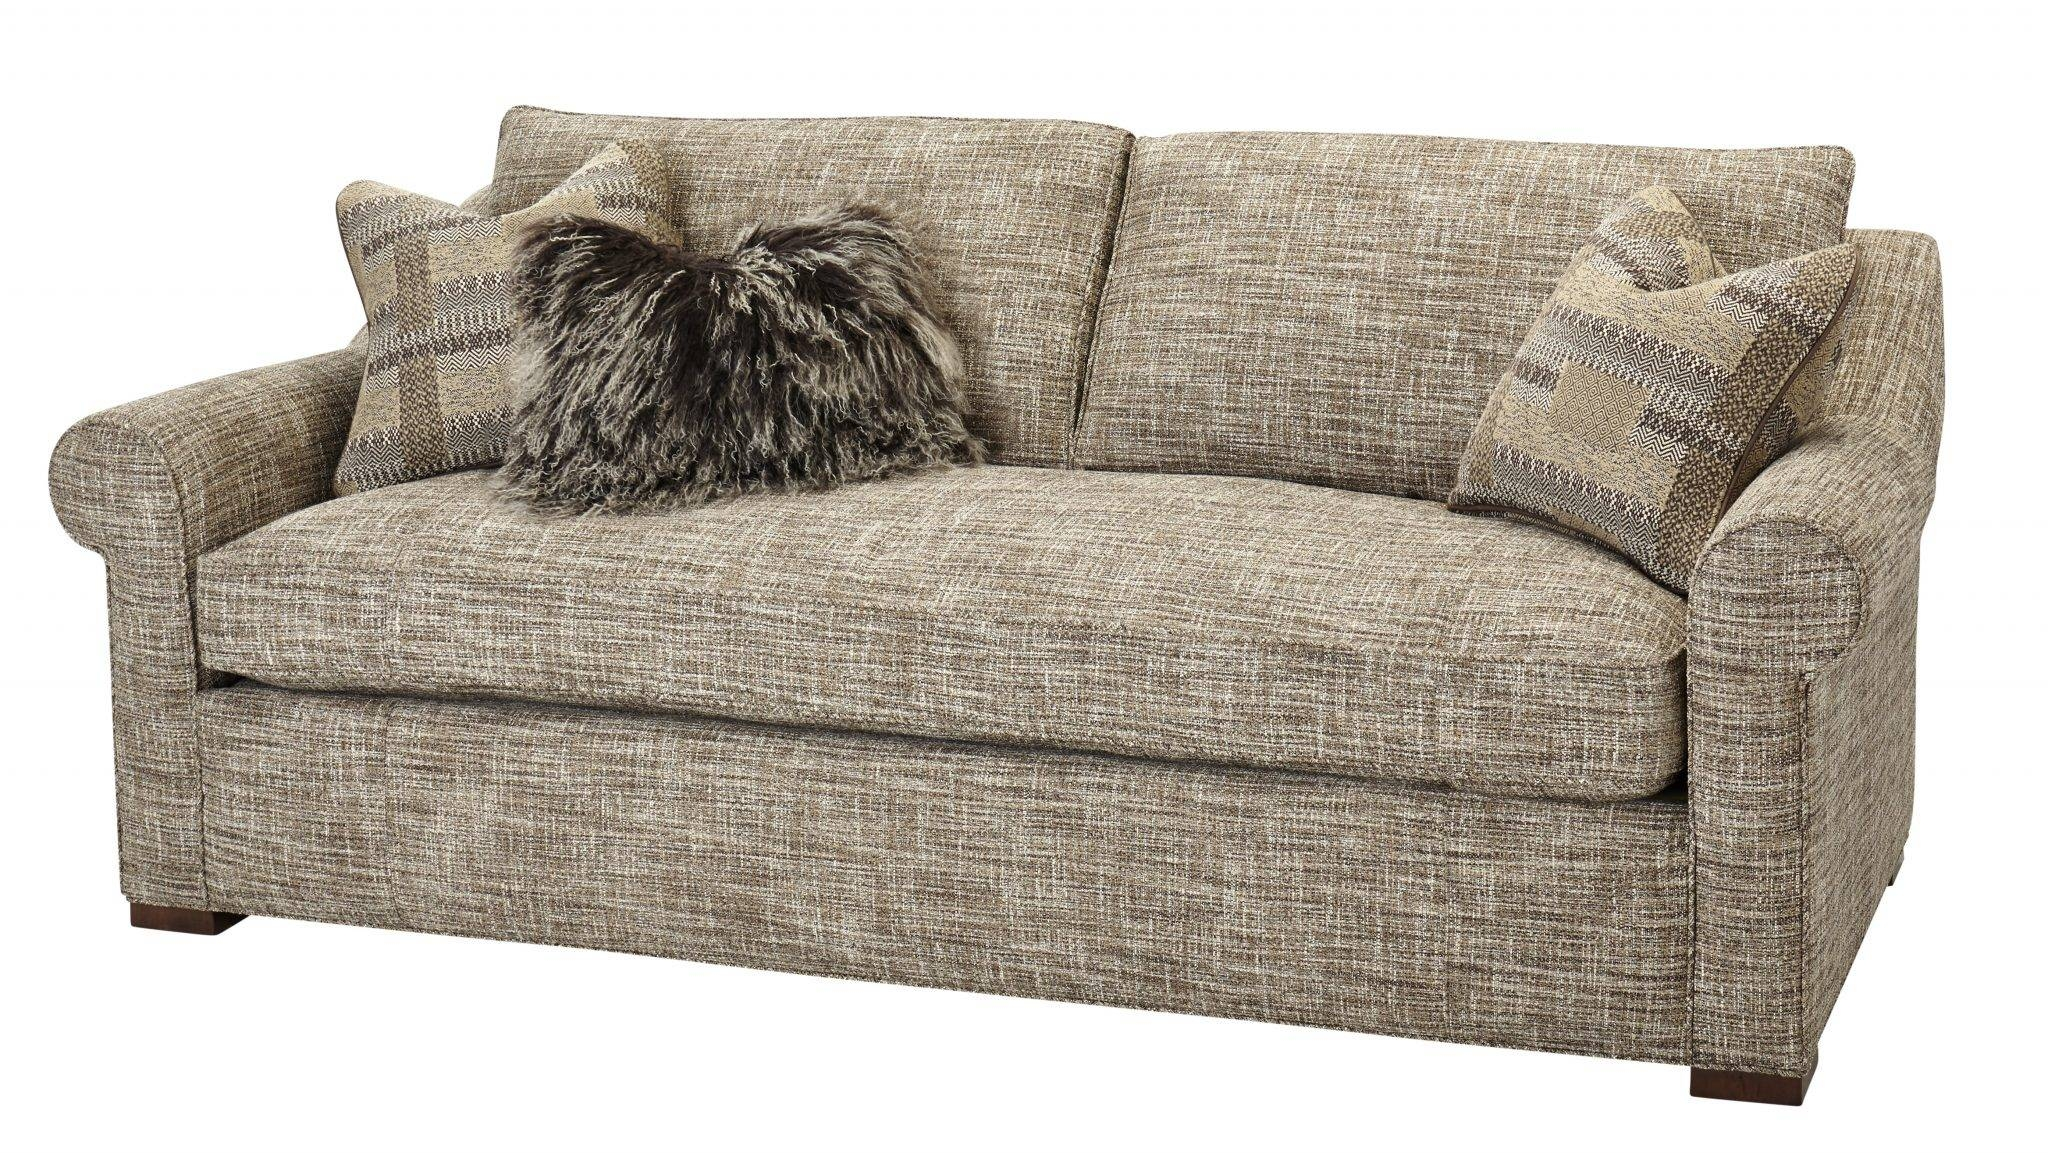 One Cushion Sofas - Massoud Furniture intended for Bench Cushion Sofas (Image 8 of 15)